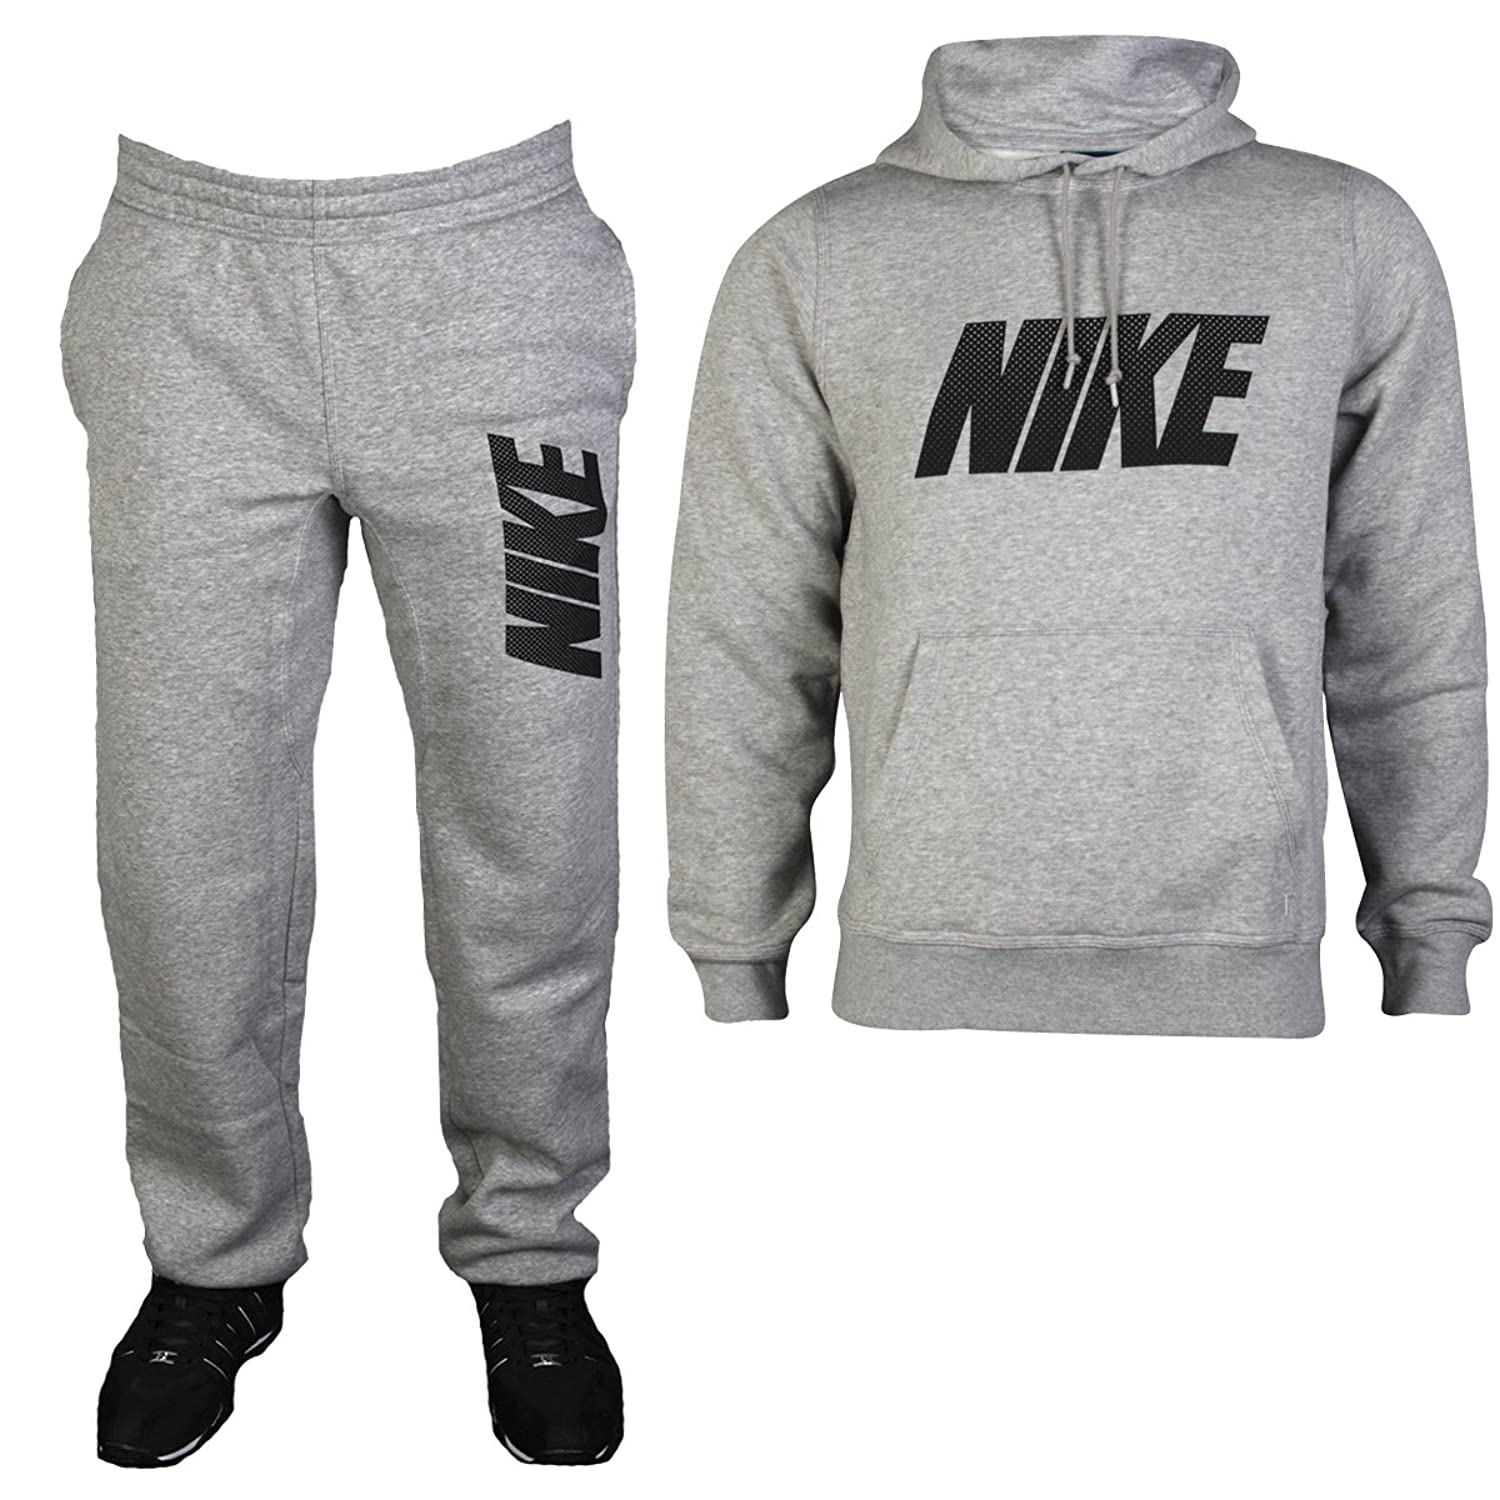 new concept 9336f 7d29e ... Tech 2.0 Fleece Jogging Pant - Grey Mens Grey Nike Jersey Lounge Sports  Hoody Top Bottoms ...